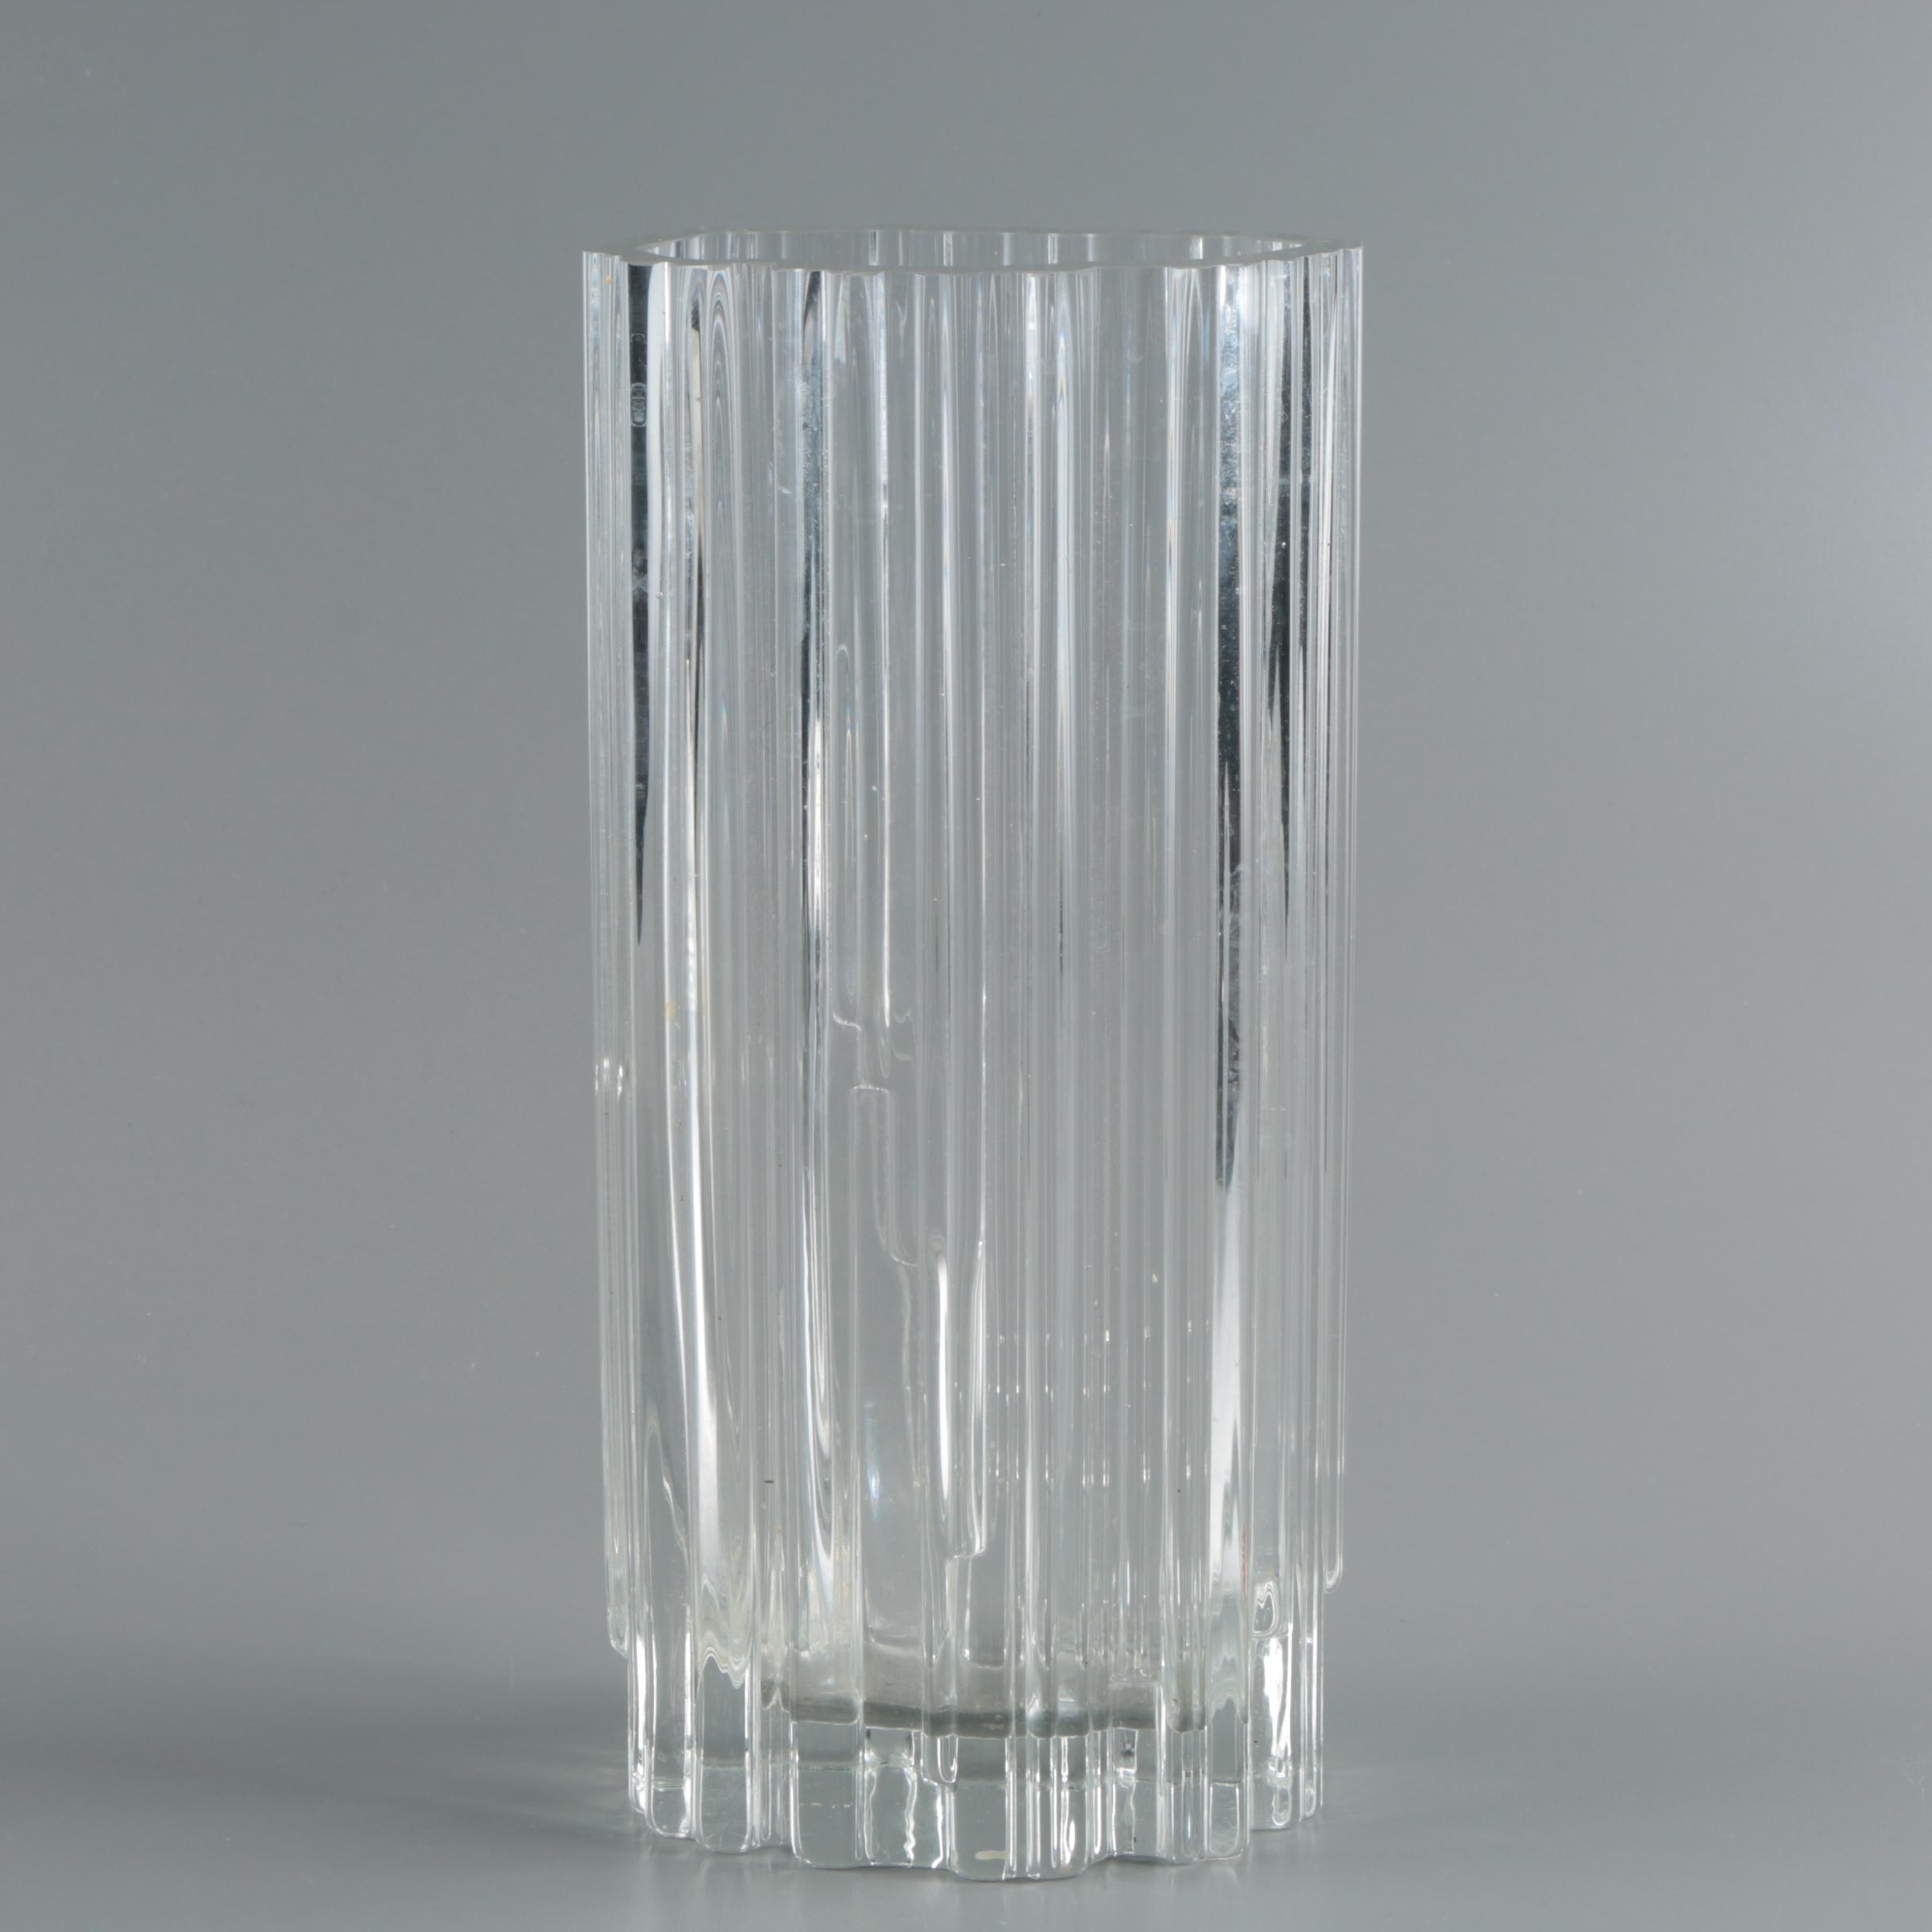 Tapio Wirkkala Signed Art Glass Vase